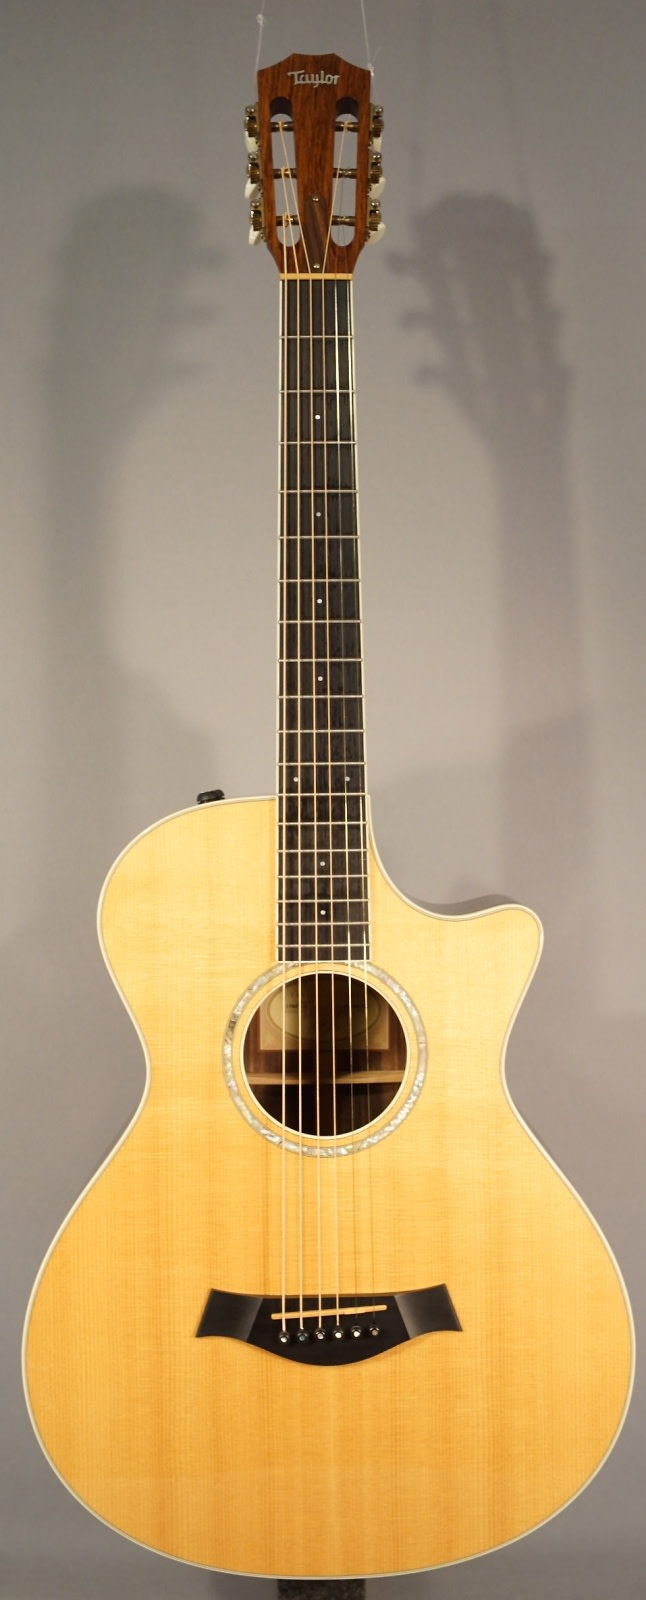 USED! Taylor 12 FRET-ce Acoustic Guitar With Case!